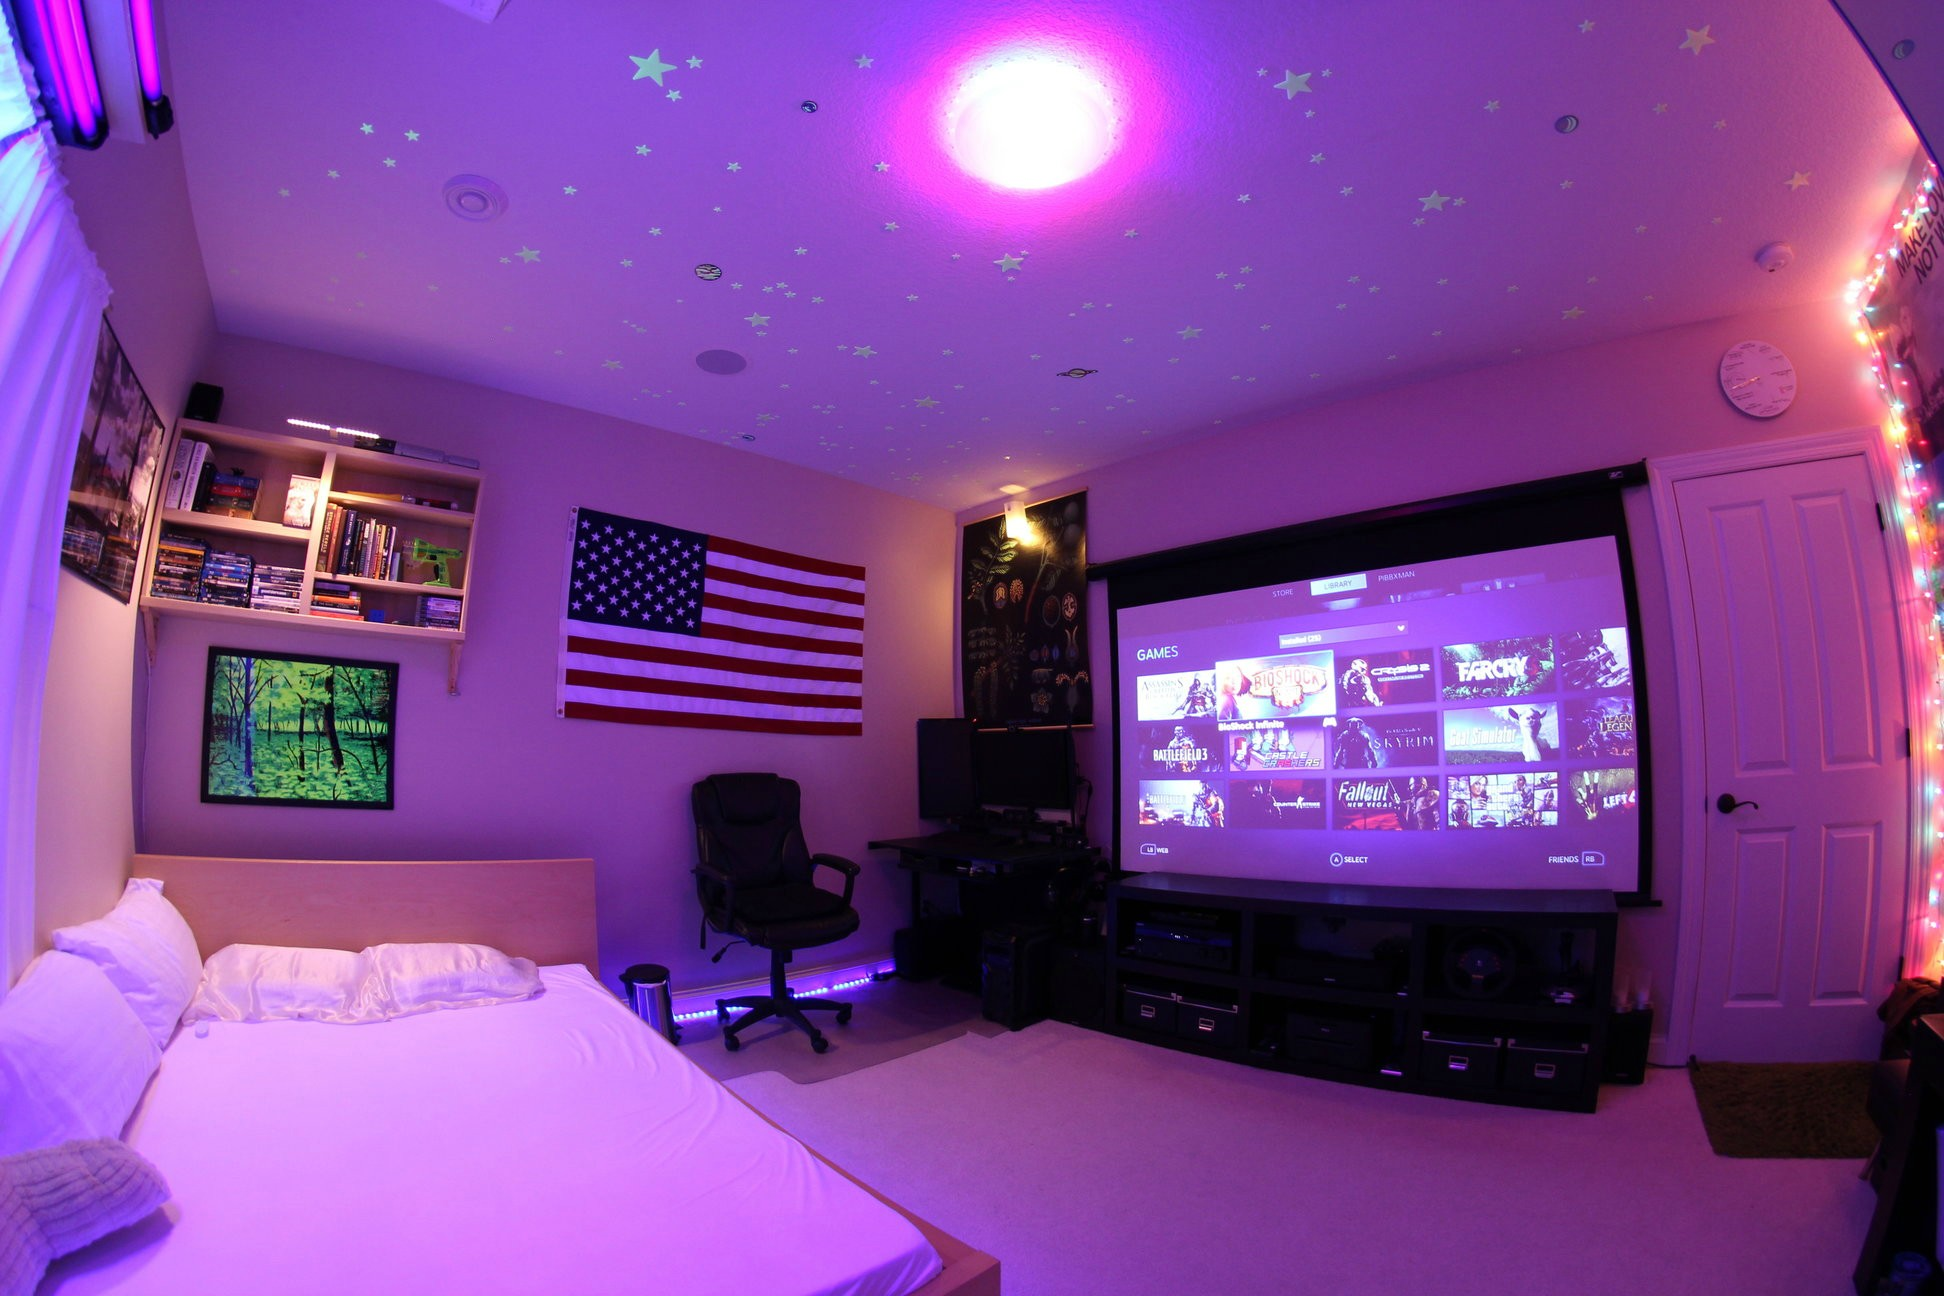 47 epic video game room decoration ideas for 2016 for Room decorating games